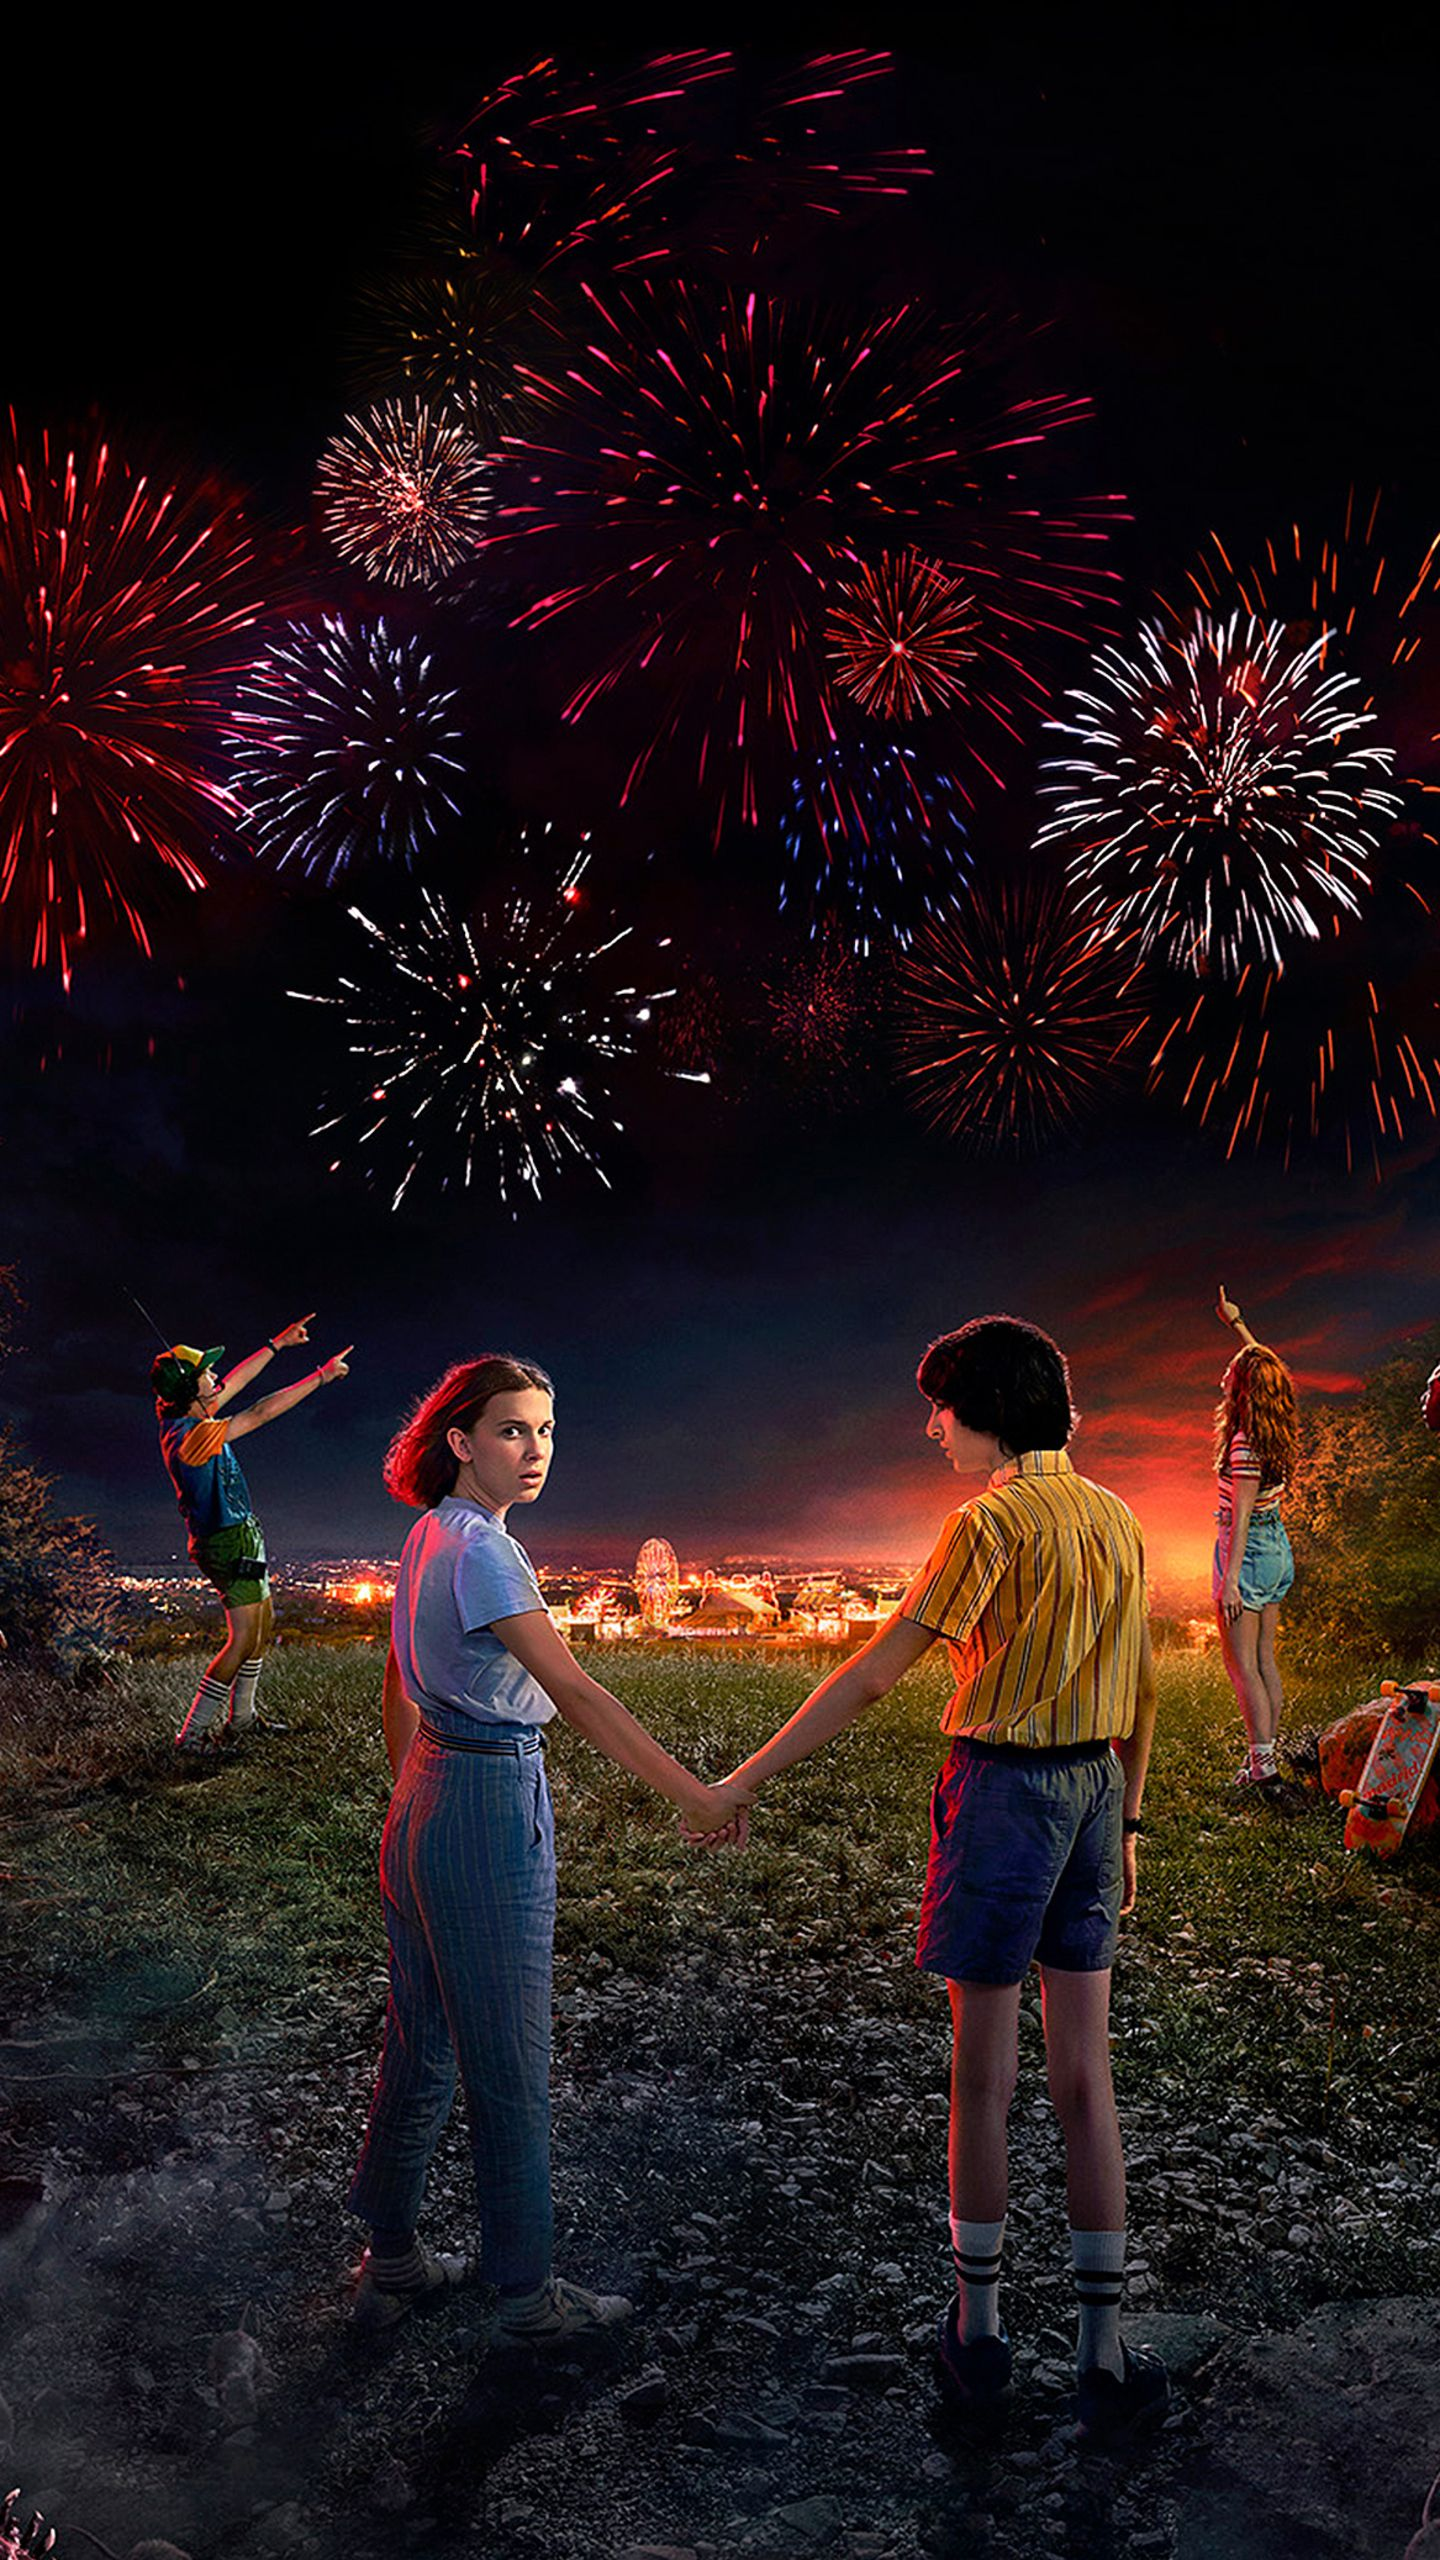 Here S When Season 3 Of Stranger Things Releasing With Images